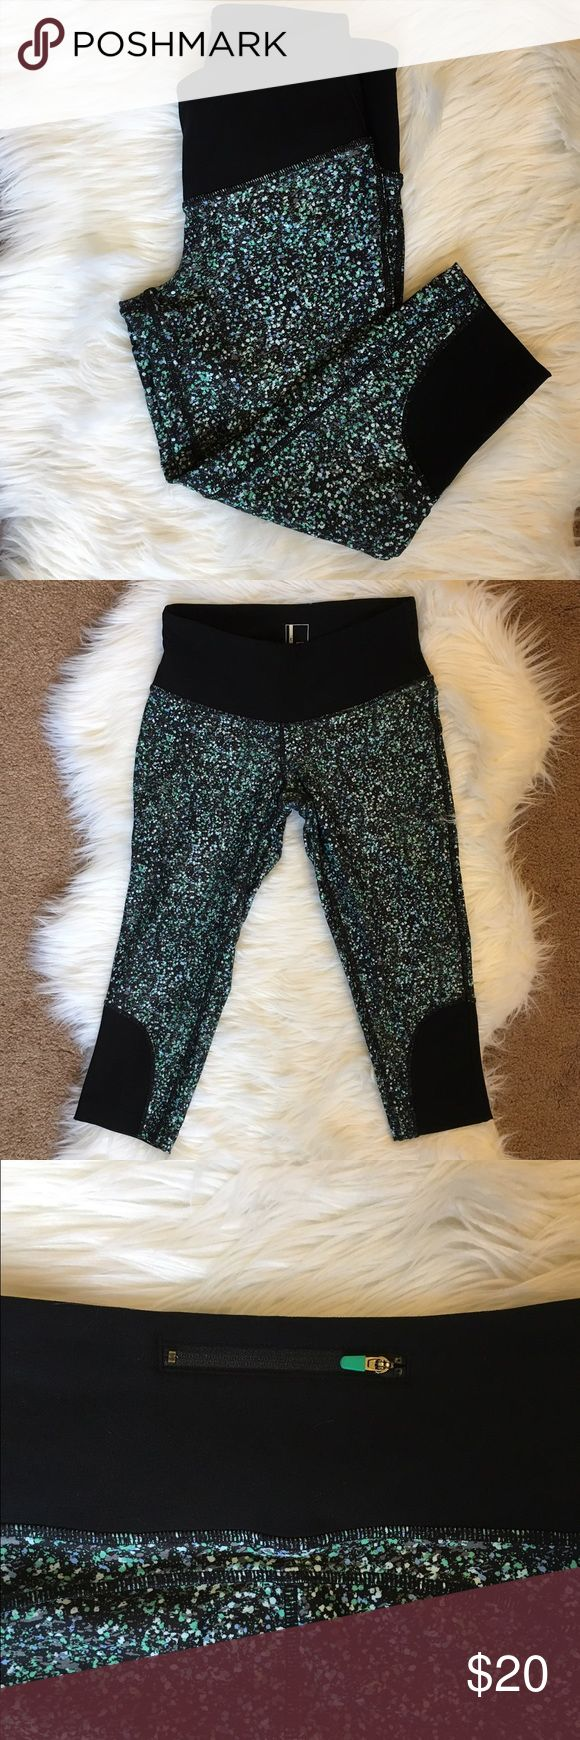 Mondetta Printed Workout Capris Moisture wicking fabrication Back zippered pocket with flat lock puller Excellent condition Only worn one time MONDETTA Pants